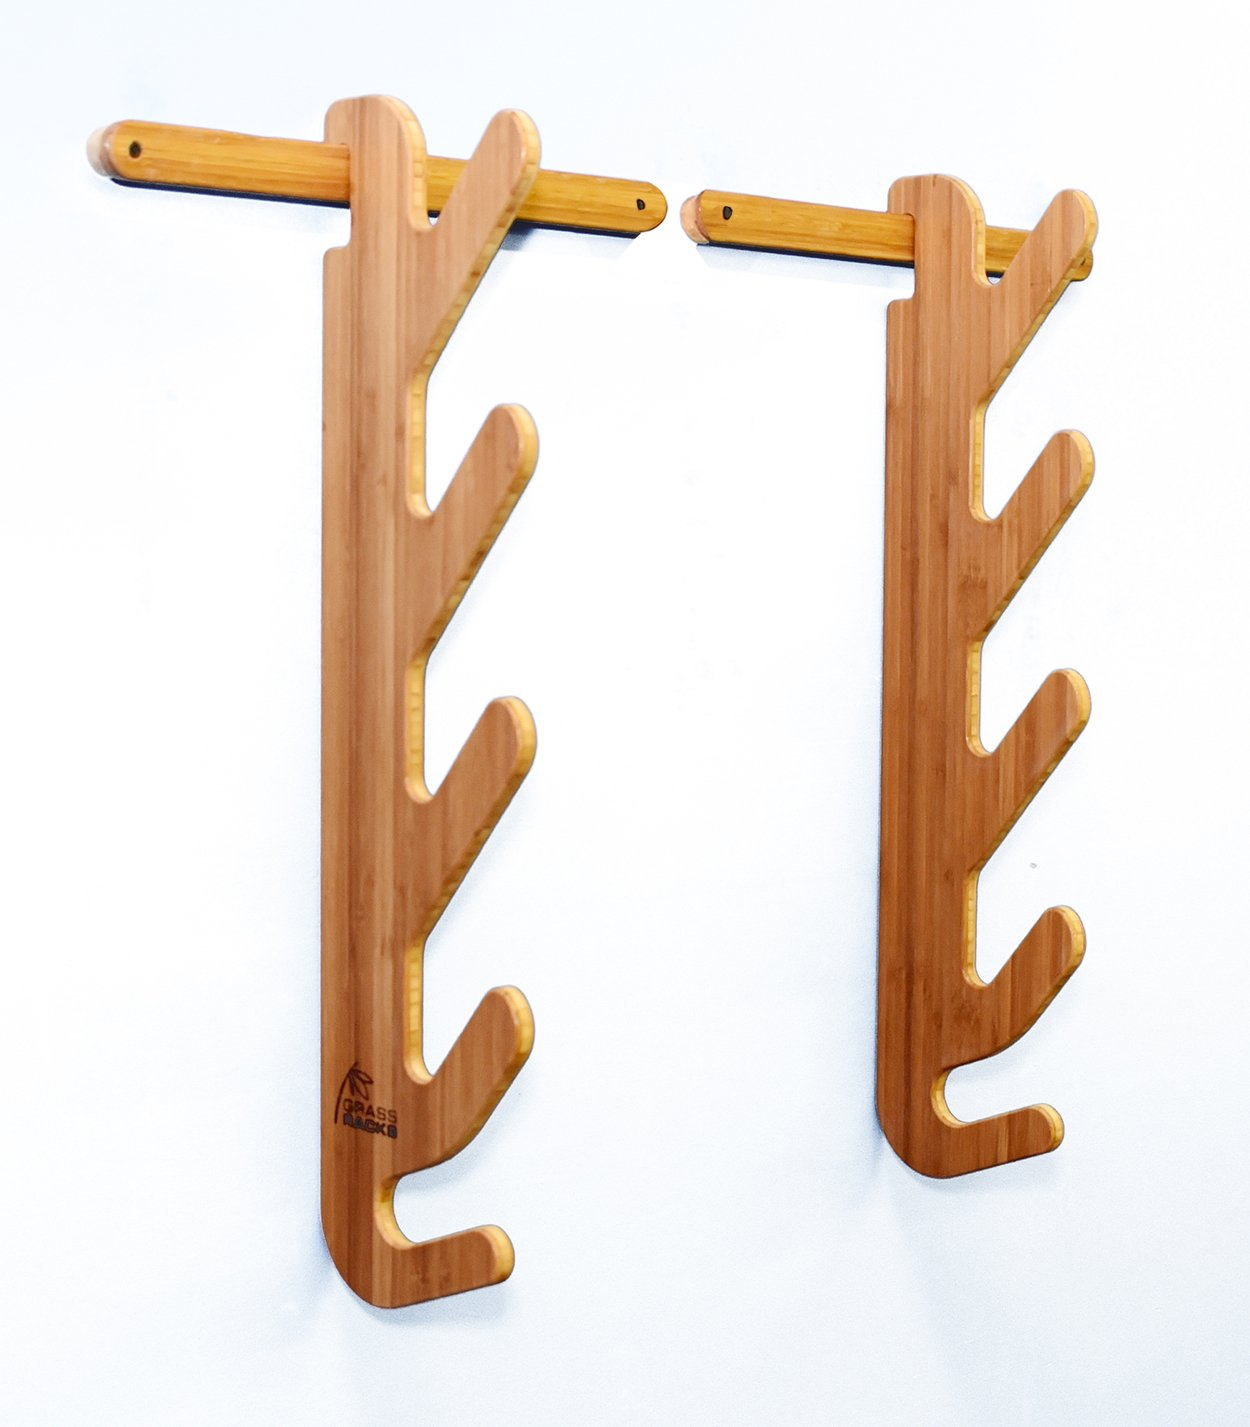 Grassracks Hallsteiner Quad Bamboo Ski Rack for 3 or 4 Pairs of Skis Maholla Products Inc. 50040C